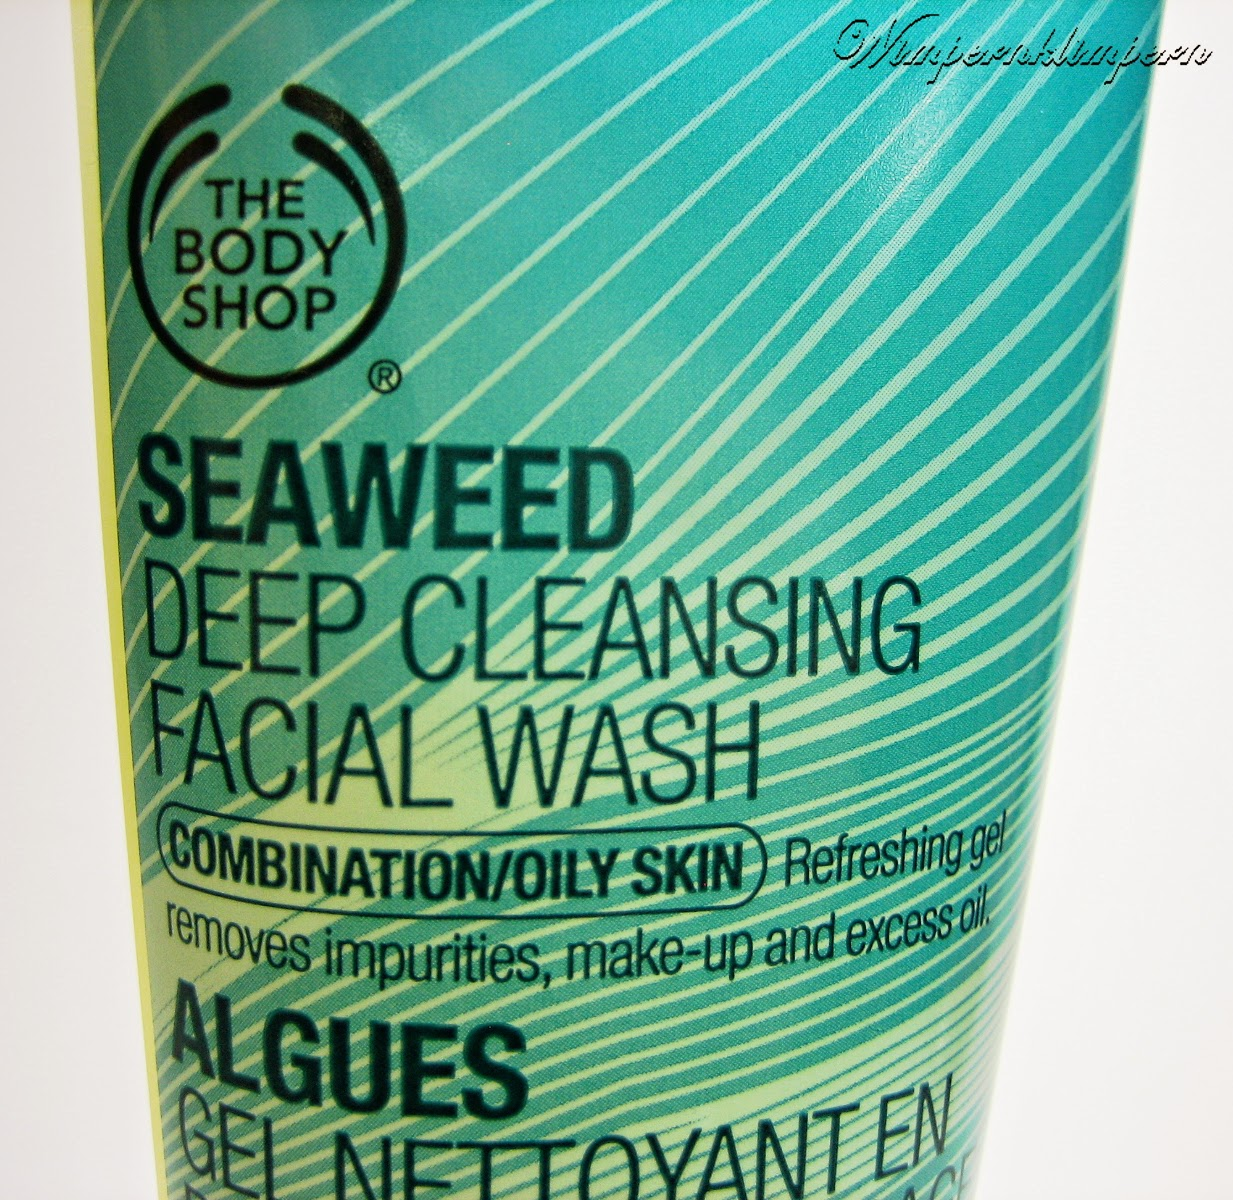 The Body Shop Seaweed Deep Cleansing Facial Wash Etikett